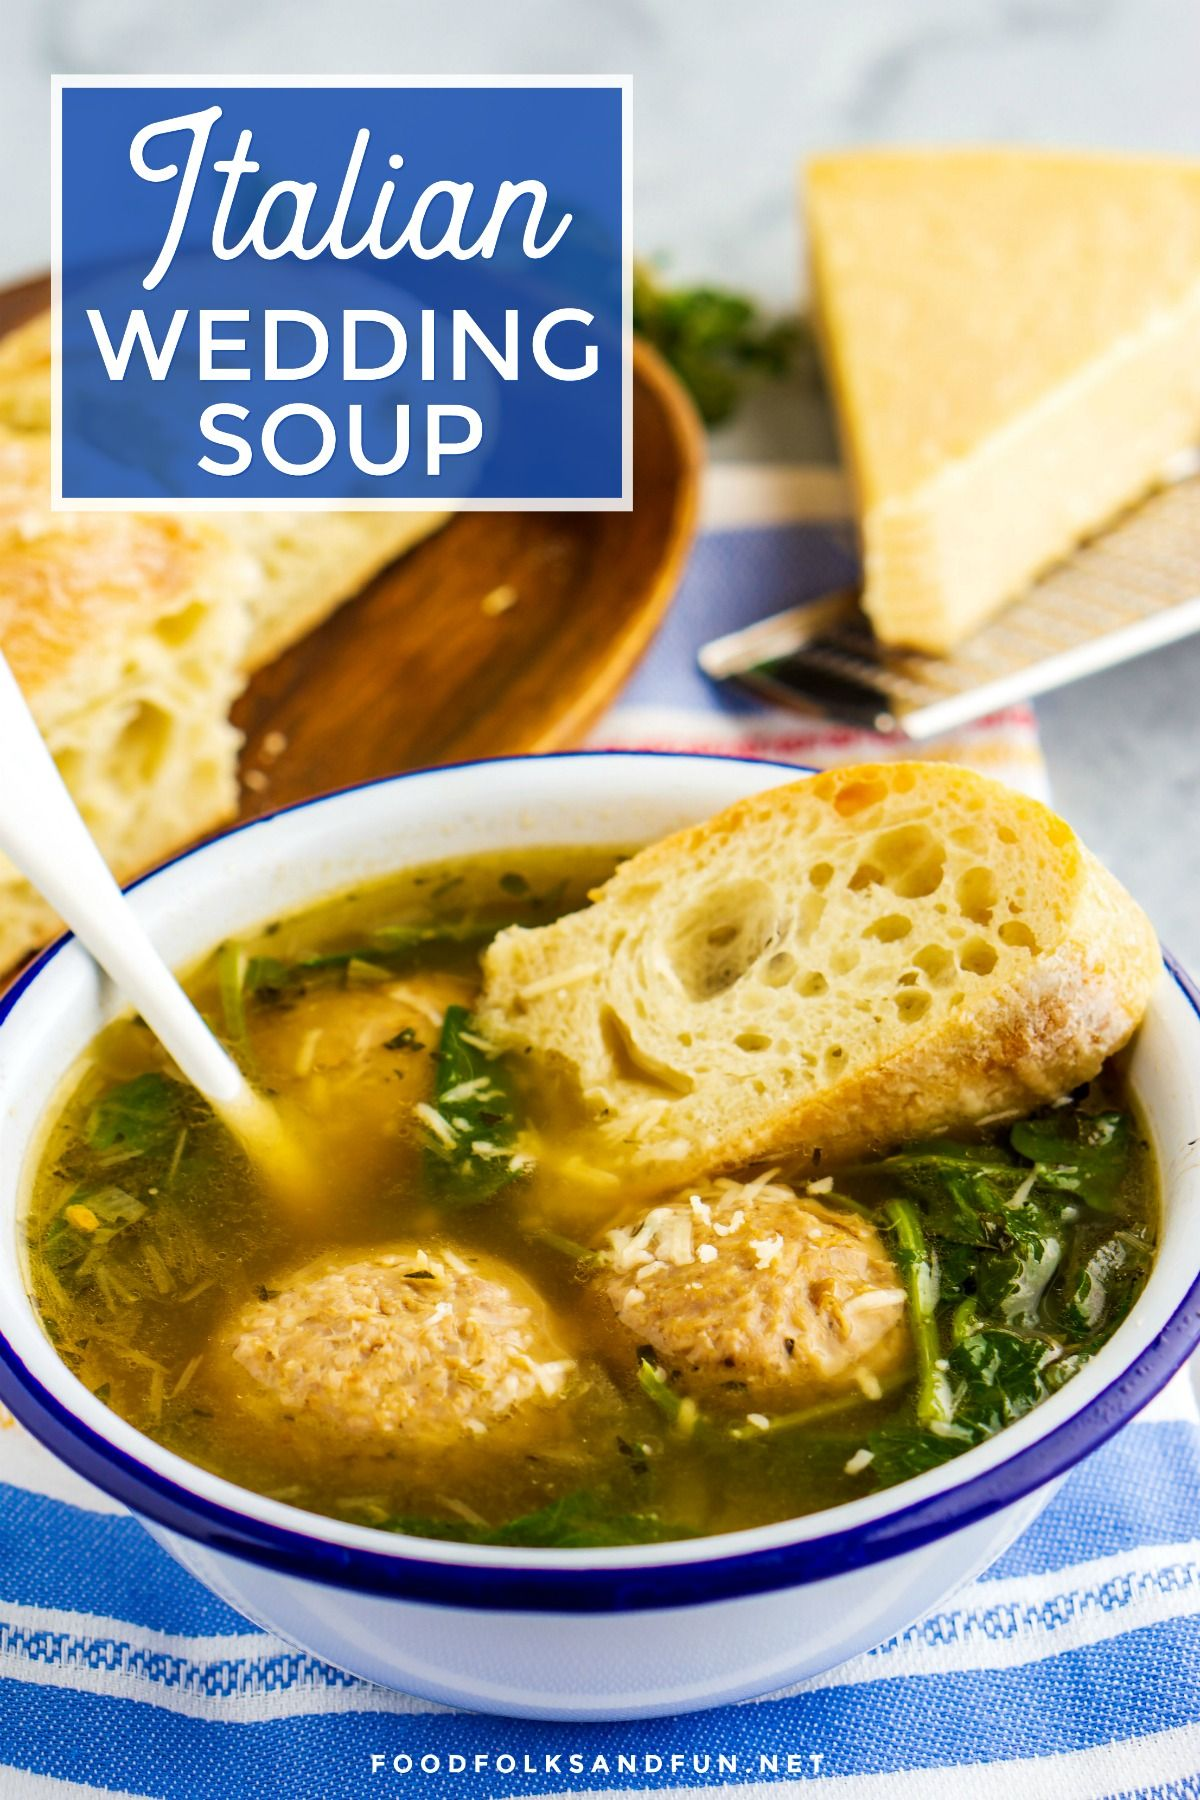 This shortcut Italian Wedding Soup recipe is an easy and